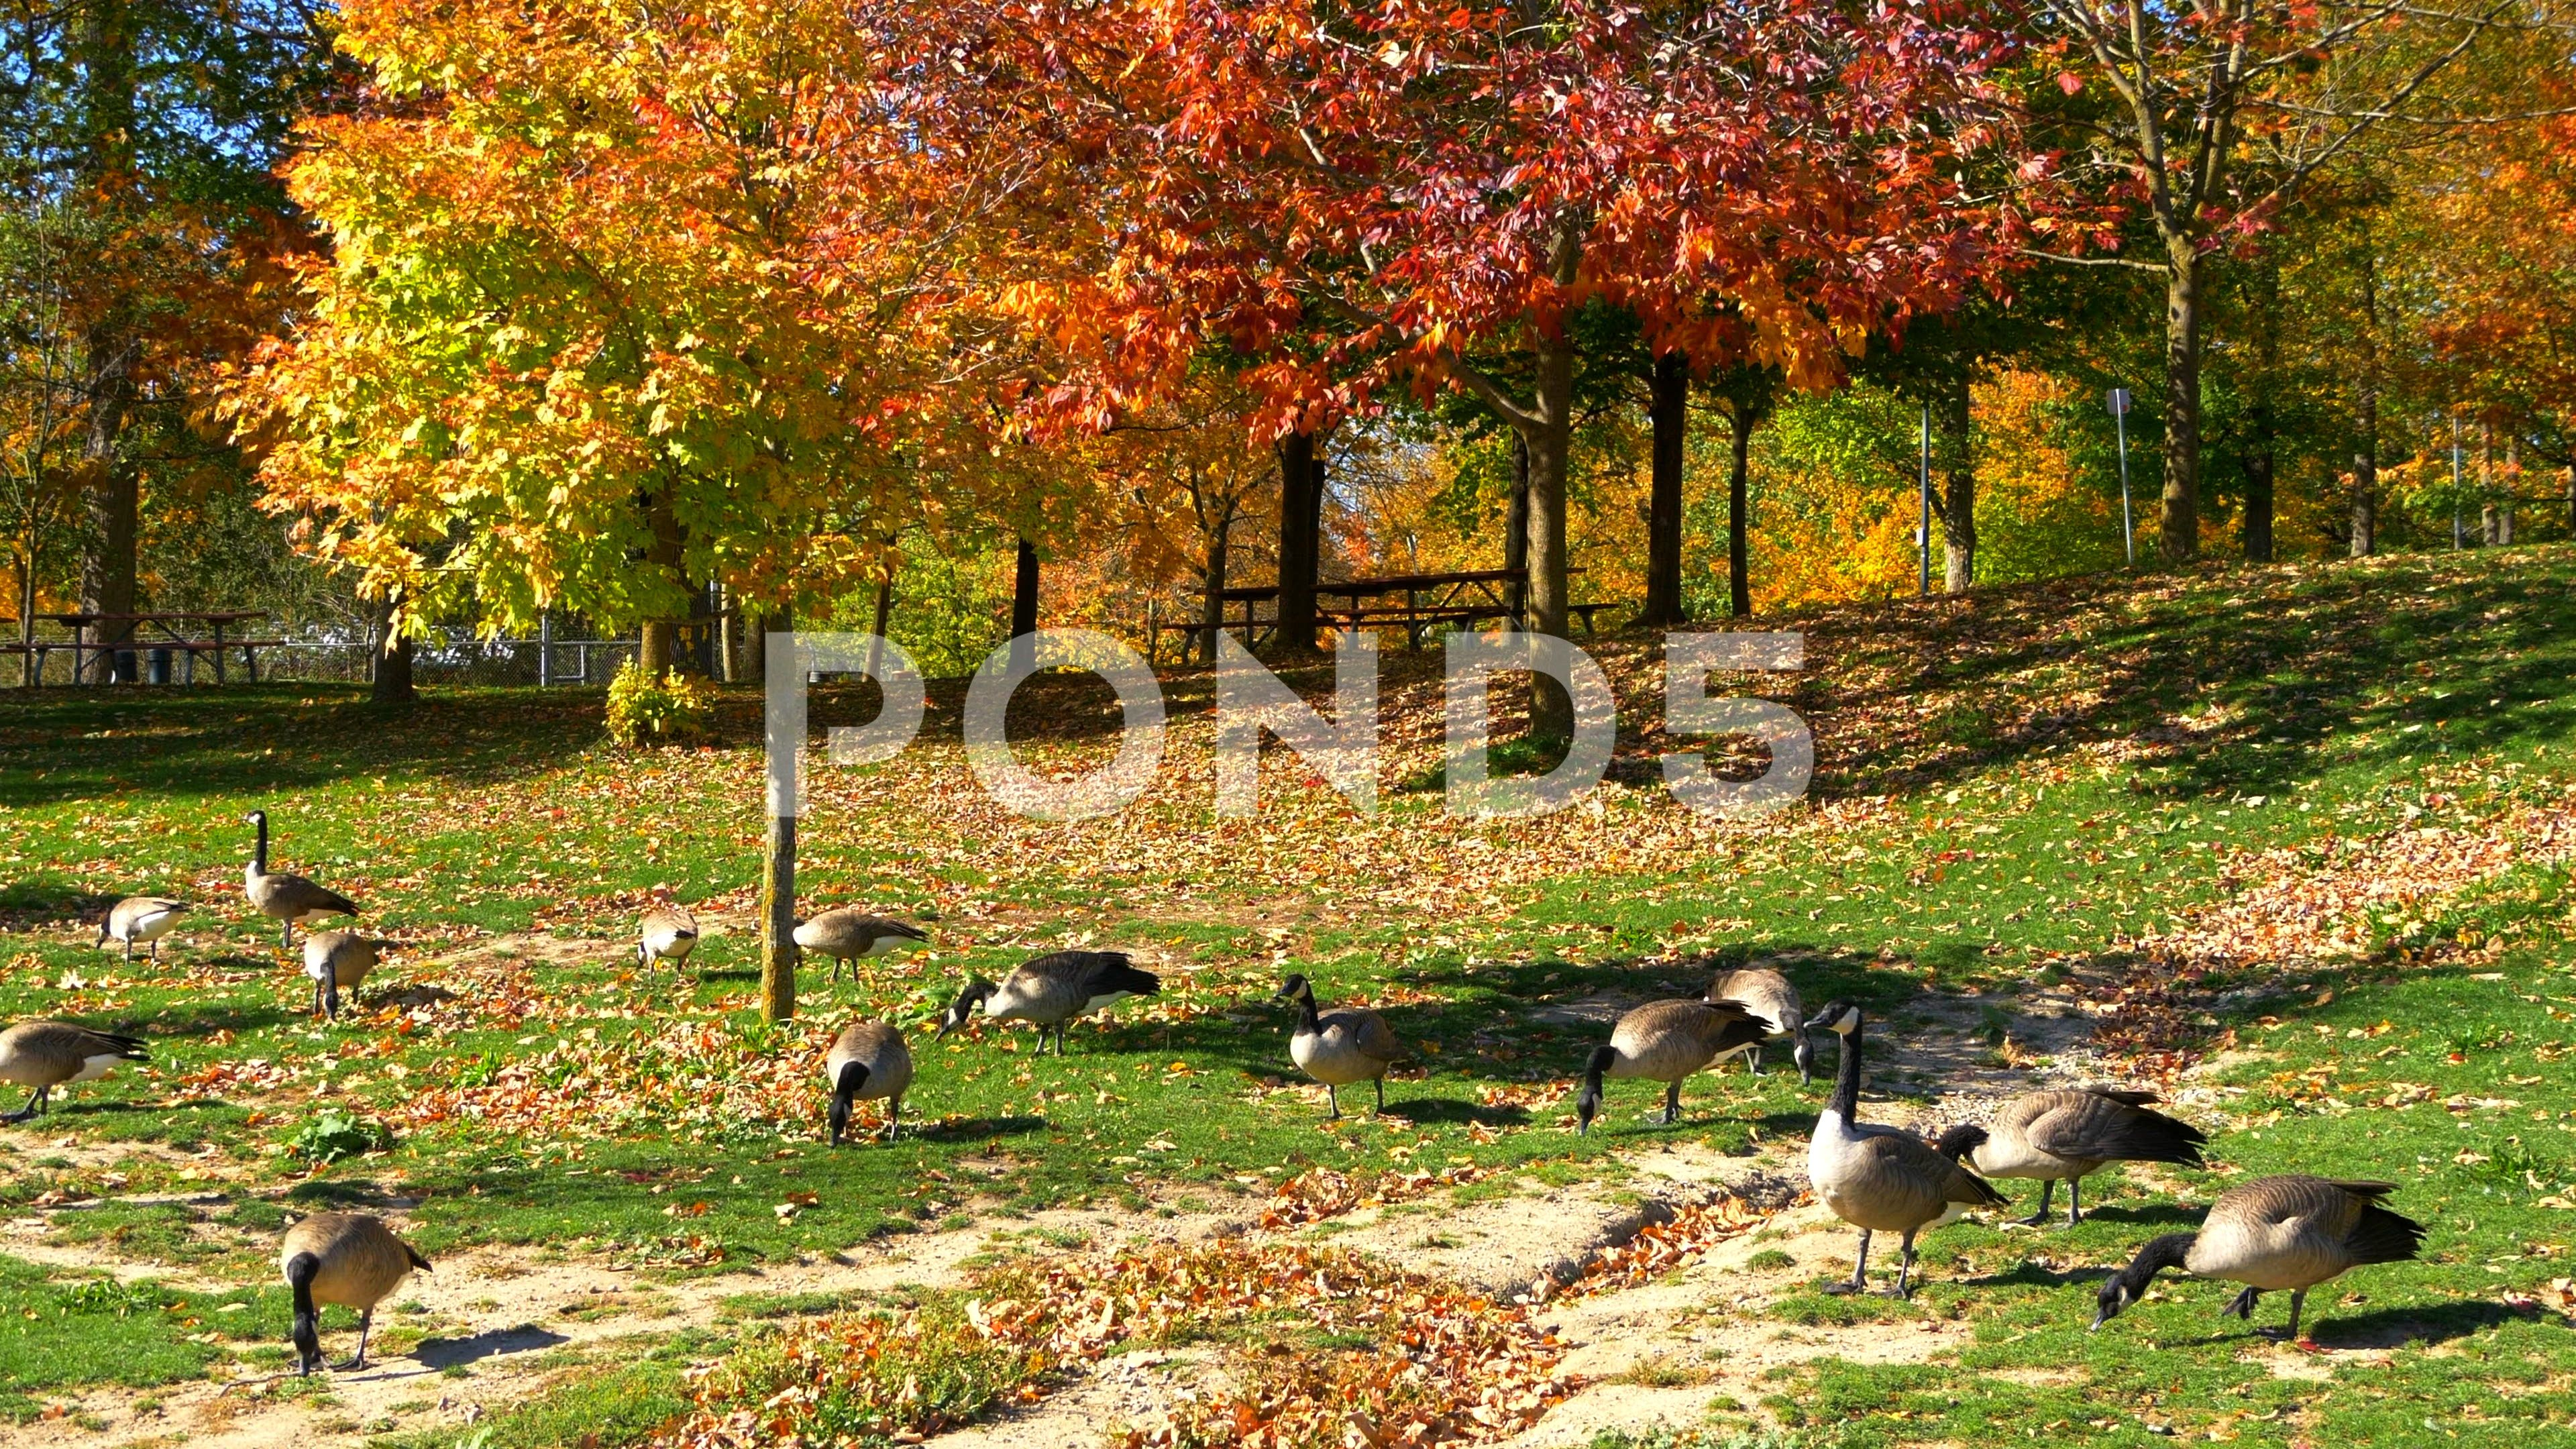 Canada Geese in Autumn Fall Park, Goose Bird Animals